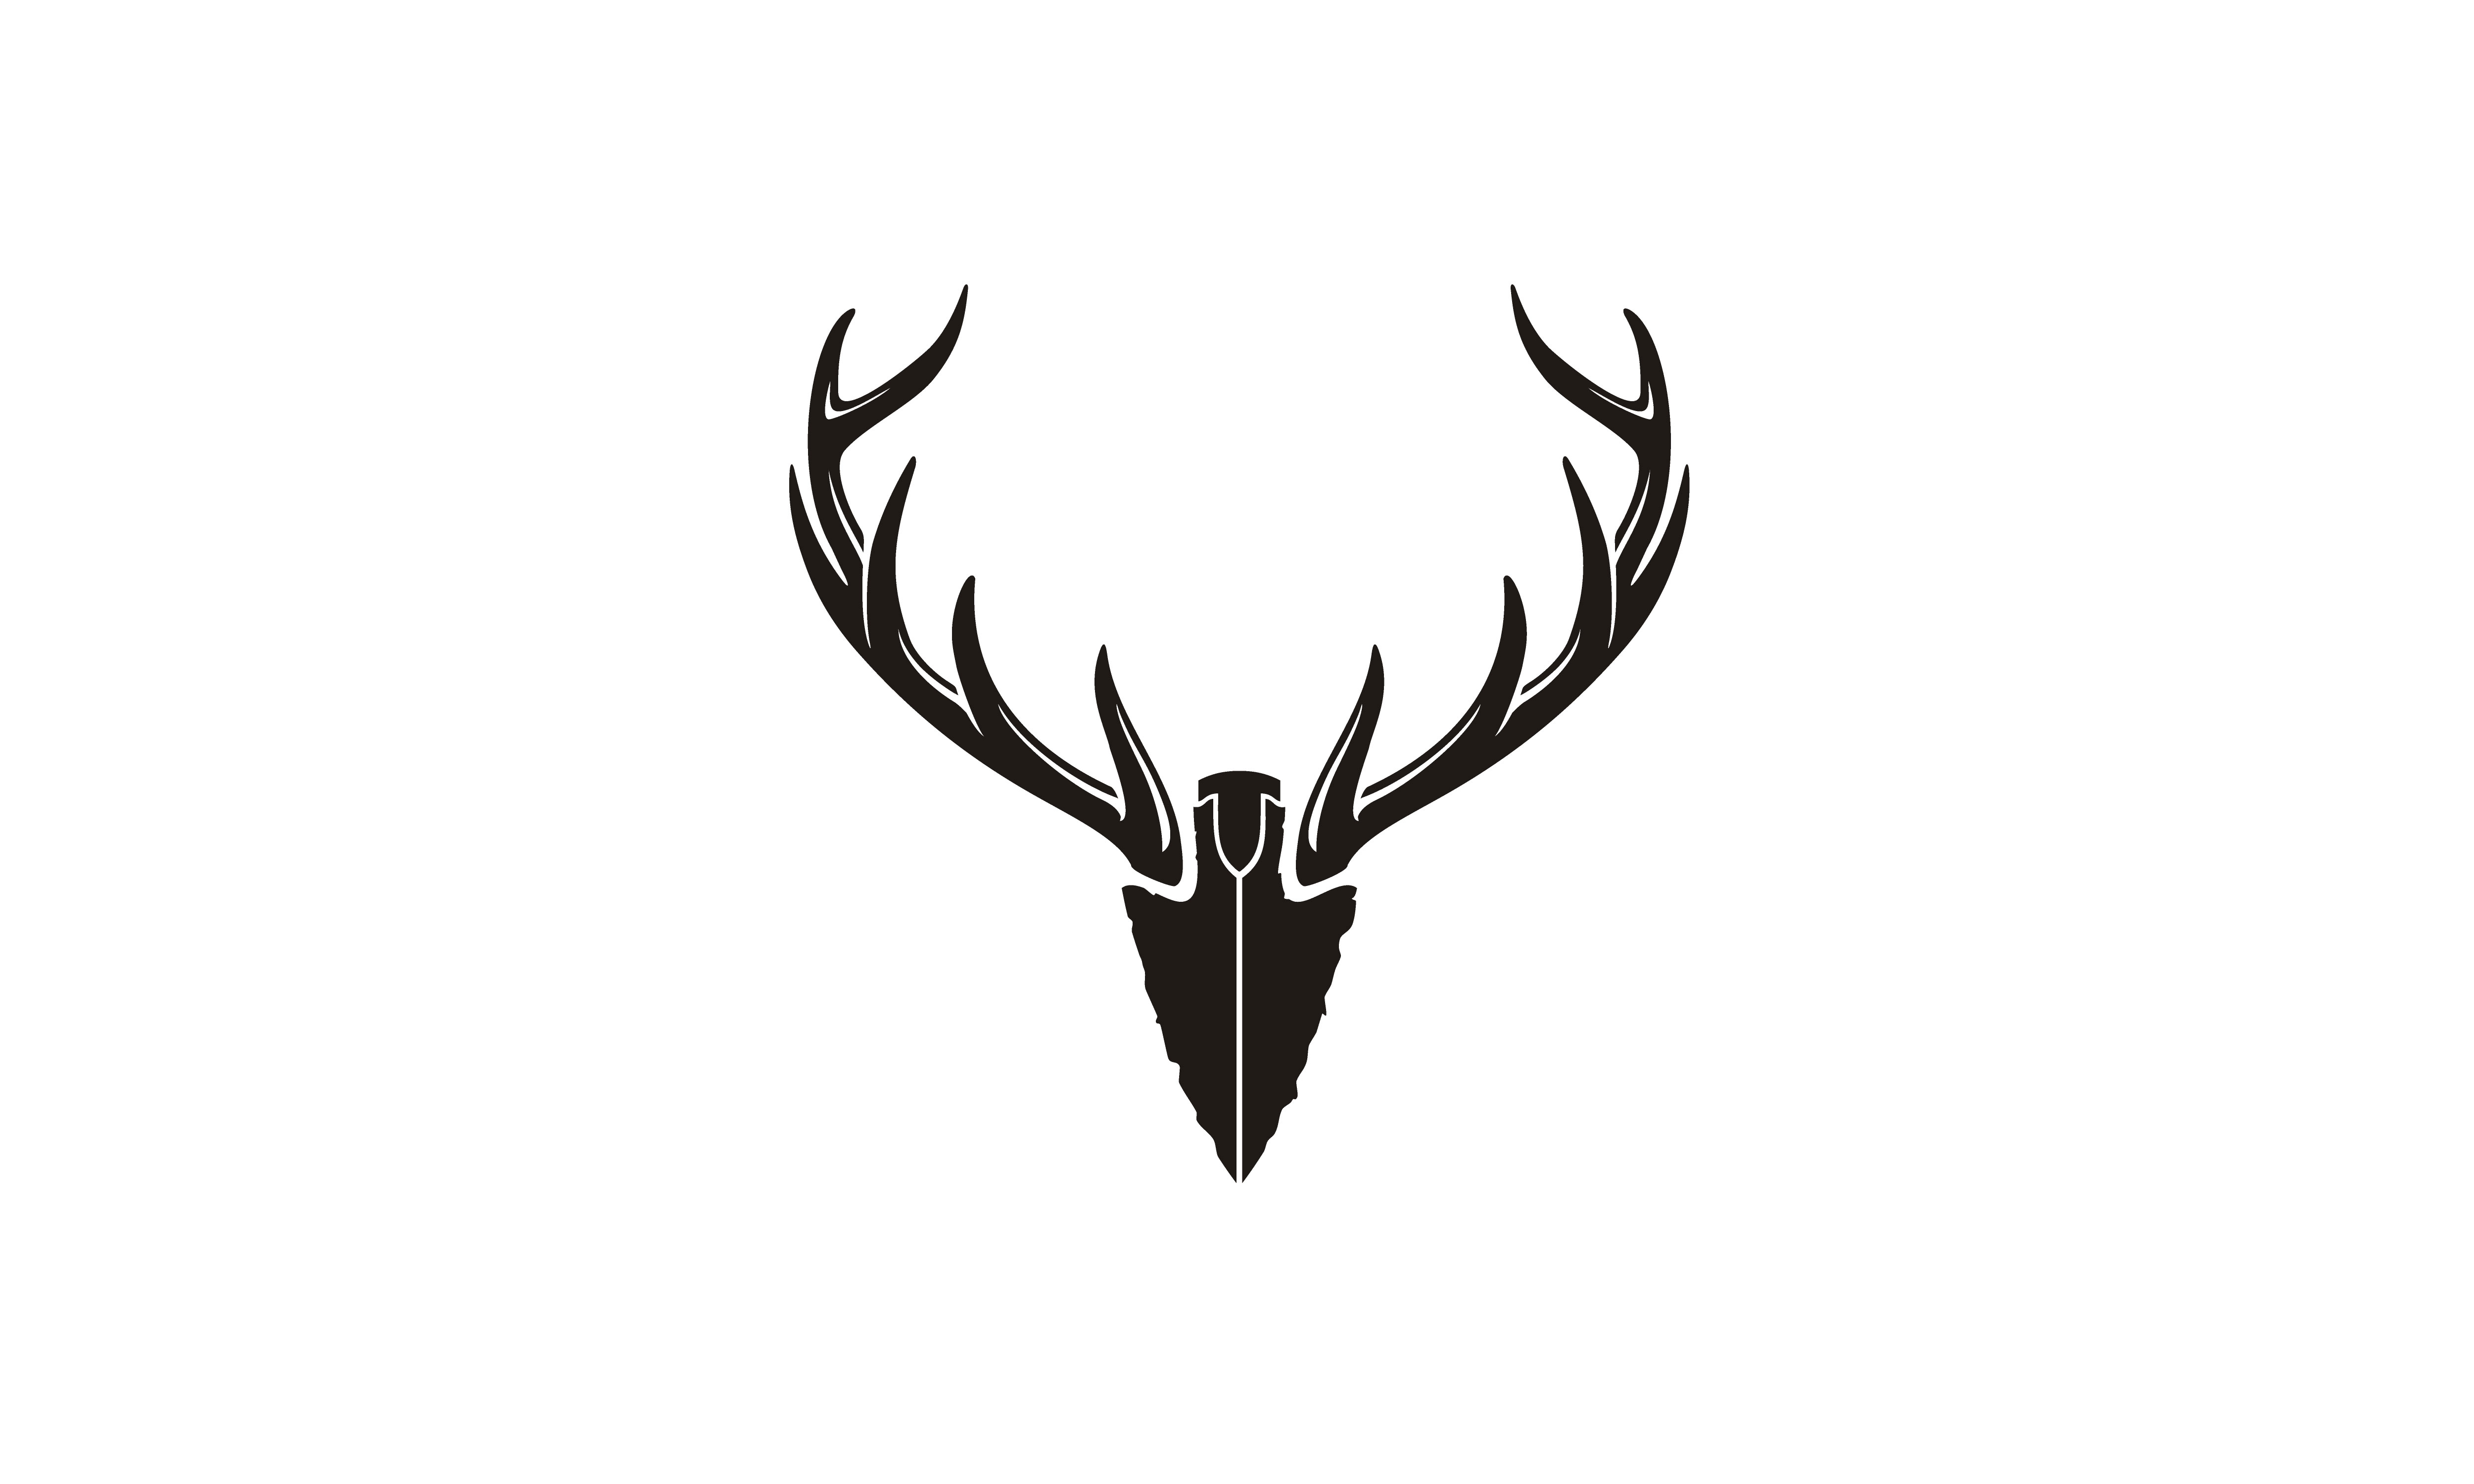 Download Free Spear Deer Antler Arrowhead Hunting Logo Graphic By Enola99d for Cricut Explore, Silhouette and other cutting machines.